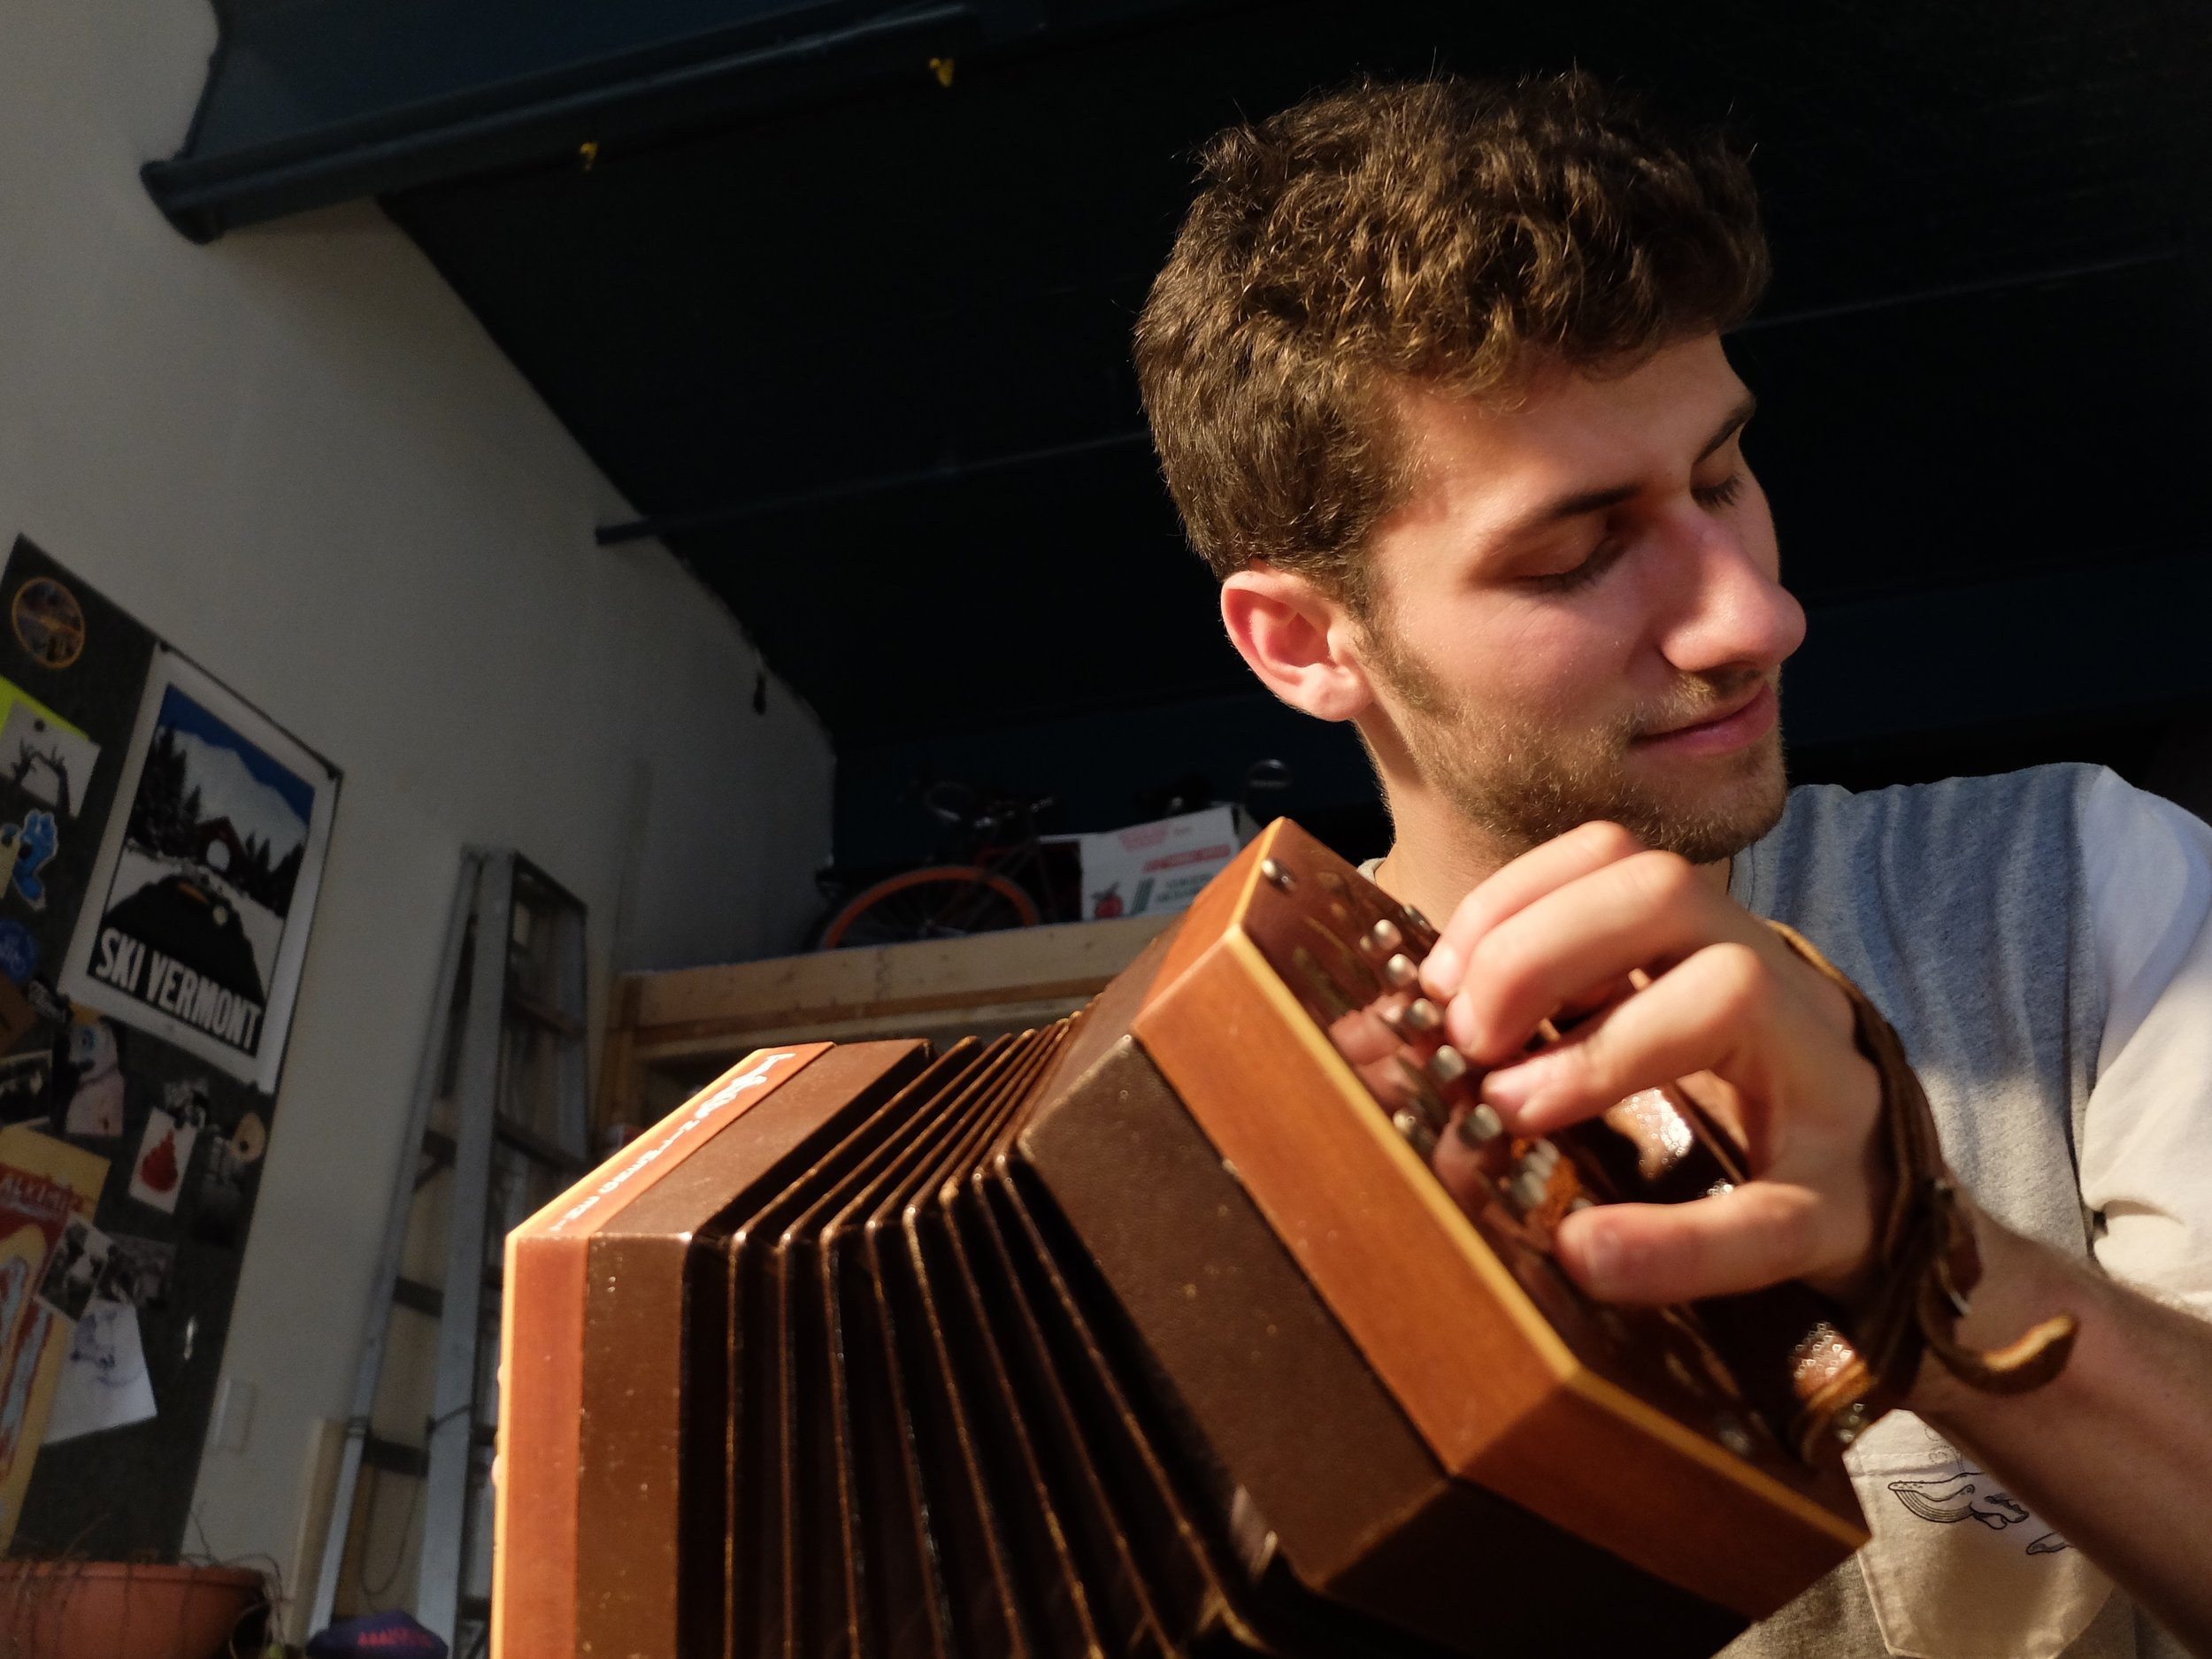 Concertina - The anglo concertina is a cross between the english concertina and german concertina. It is normally used to play traditional English and Irish music. But it has a nostalgic old time waltz feel to it as well.